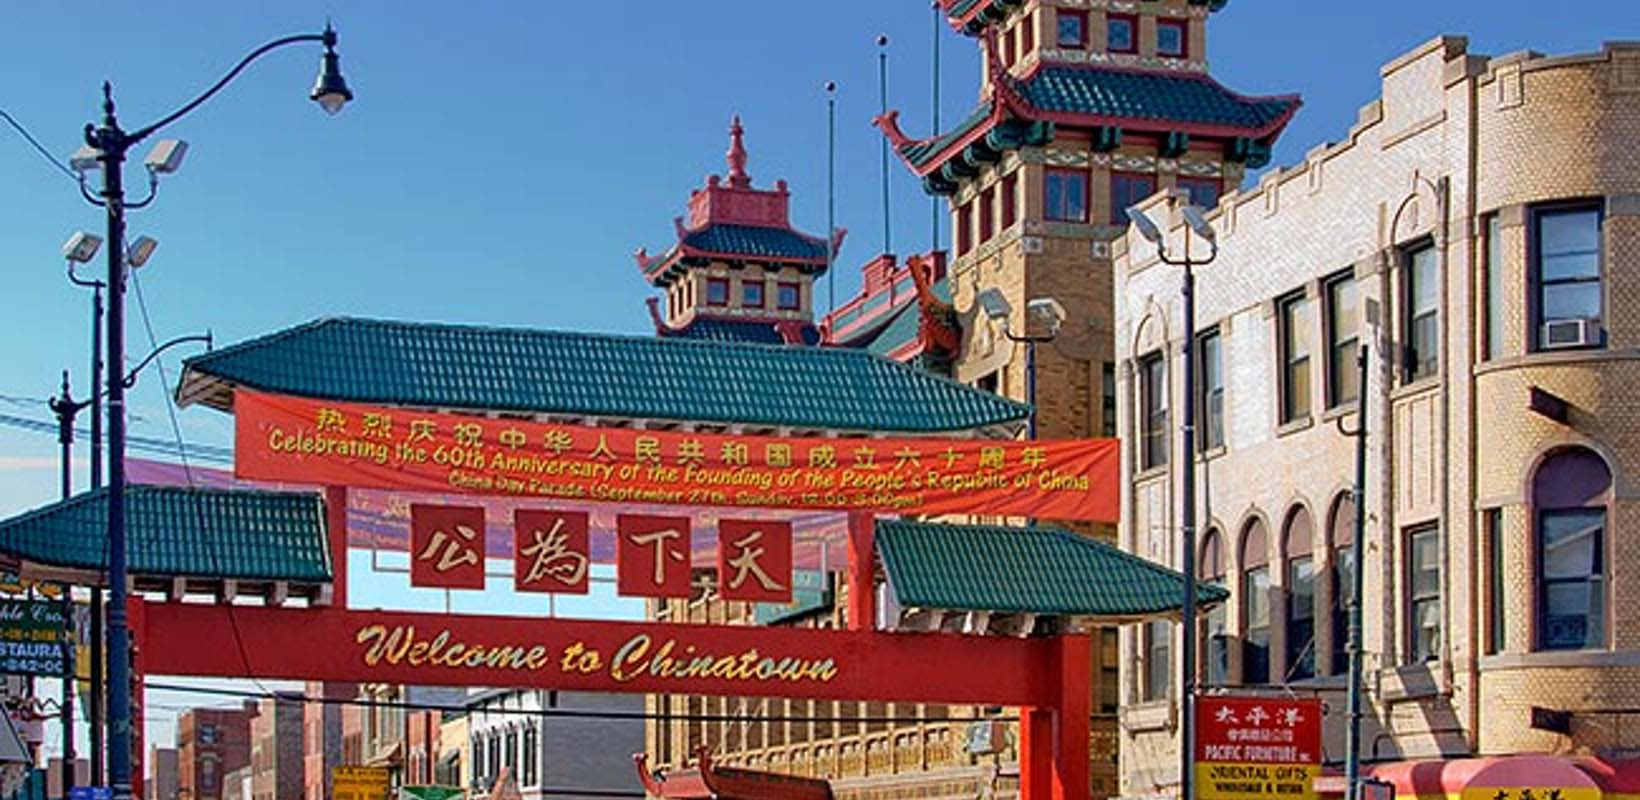 Taste of chinatown Chicago food and walking tour